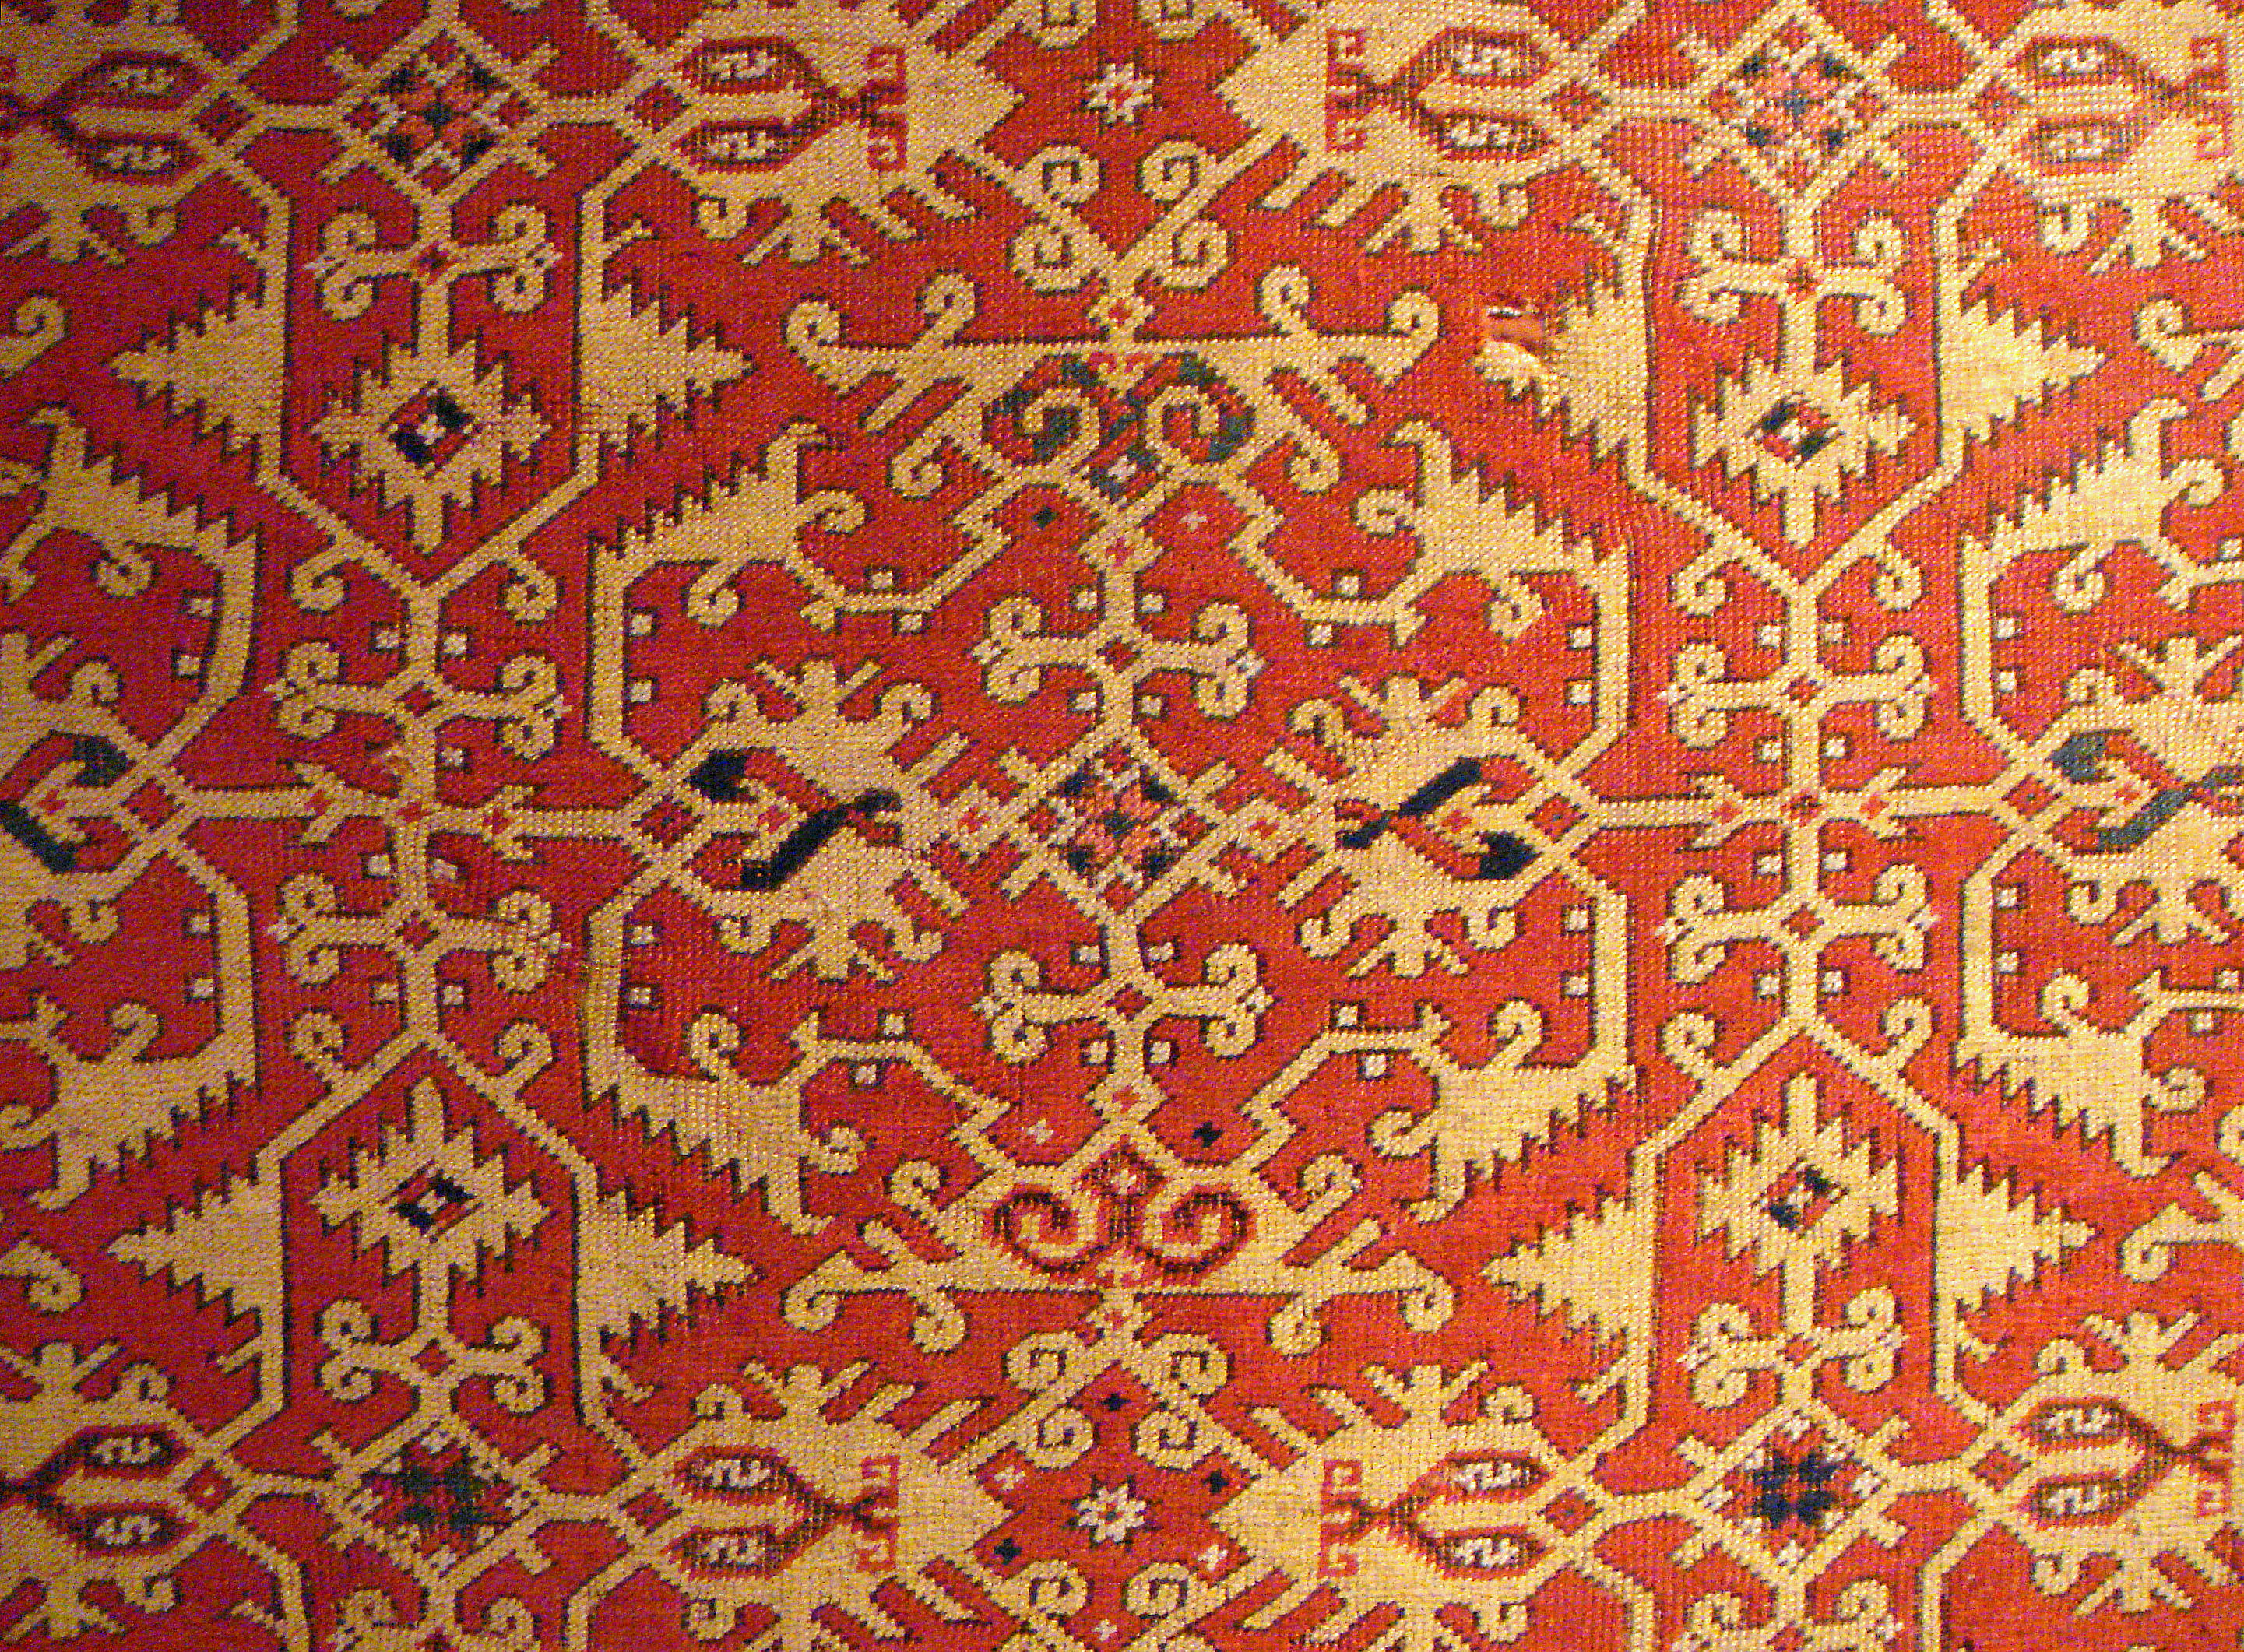 Usak Teppich File Lotto Carpet Design Usak 16th Century Jpg Wikimedia